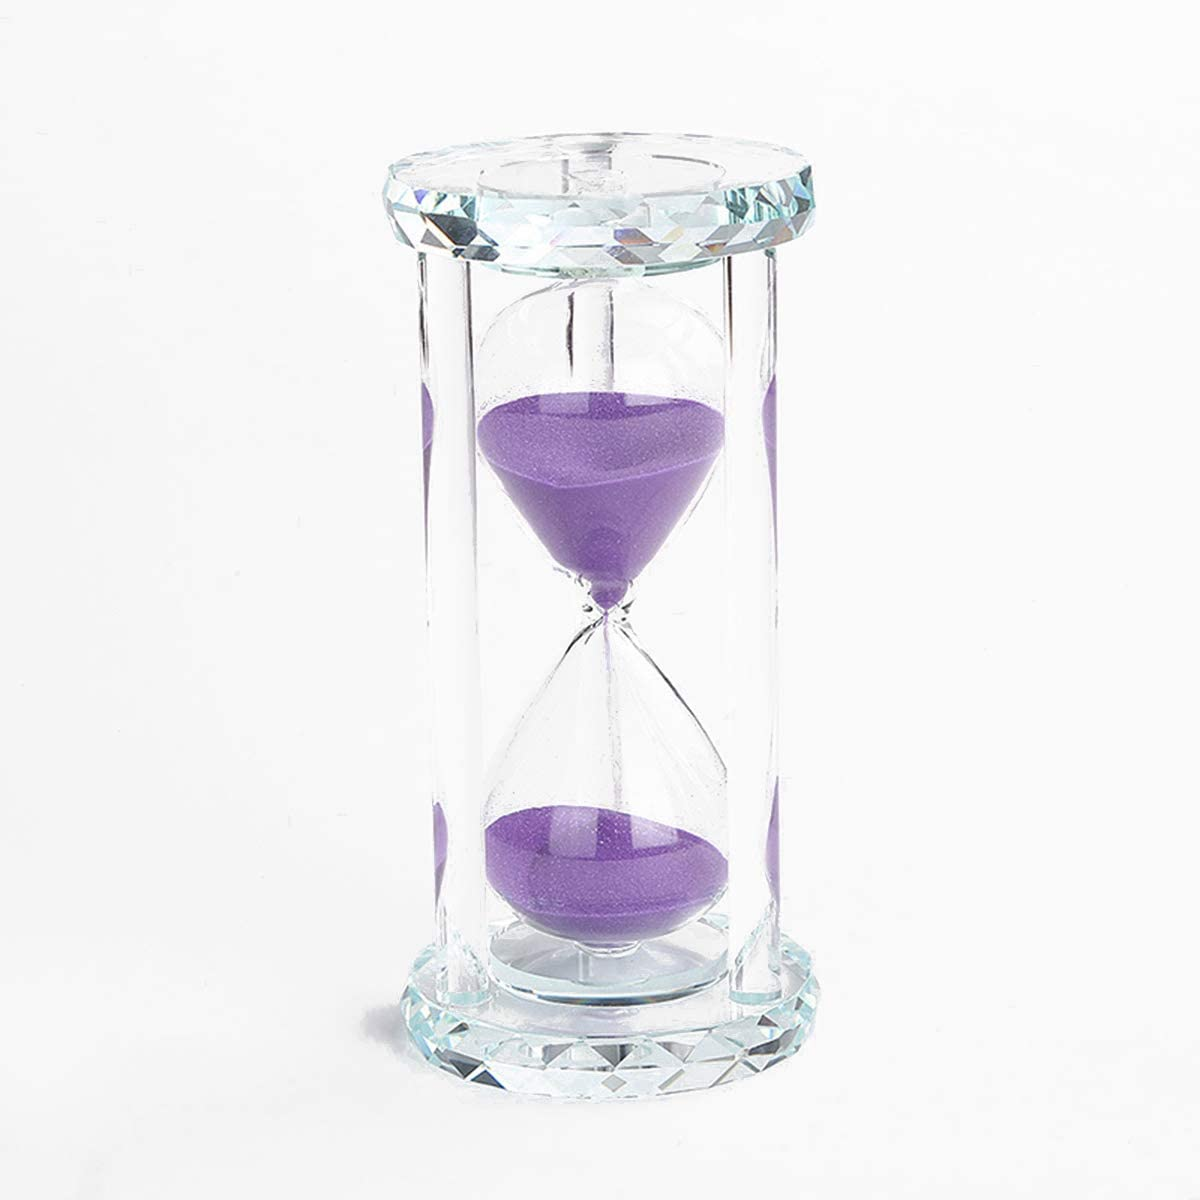 Lonovel 60 Minutes Hourglass Timer,Crystal Sand Timer Diamond Carving Surface,Good for Kitchen Office Desk Coffee Table Book Shelf Cabinet Decor Christmas Birthday Present Gift Box Package,(Purple)